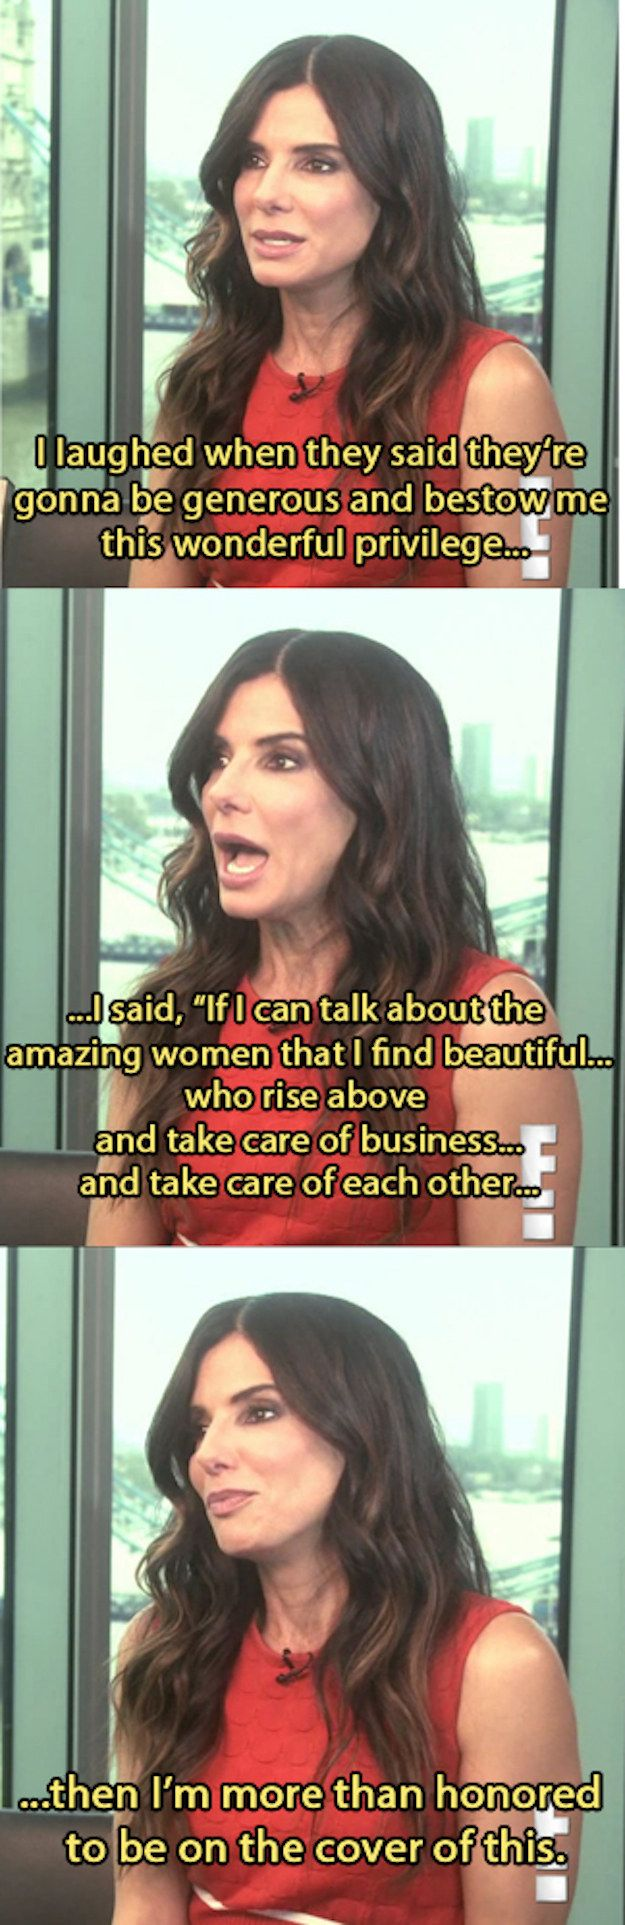 """And, ultimately, how she feels about being named """"World's Most Beautiful Woman."""" 